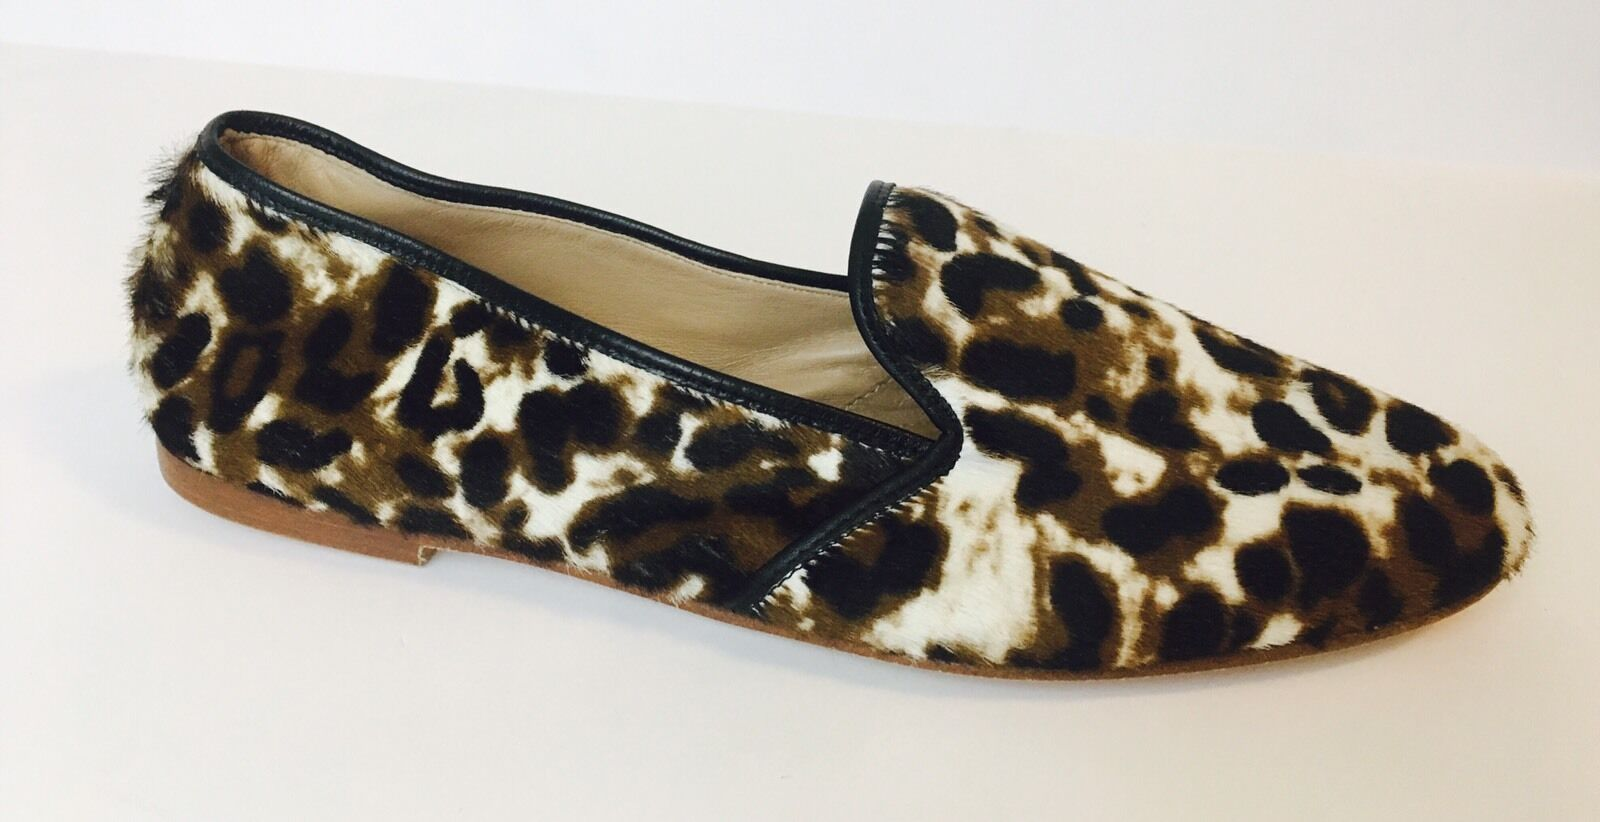 New J.CREW Collection Calf Hair Loafers 6  298 E0775